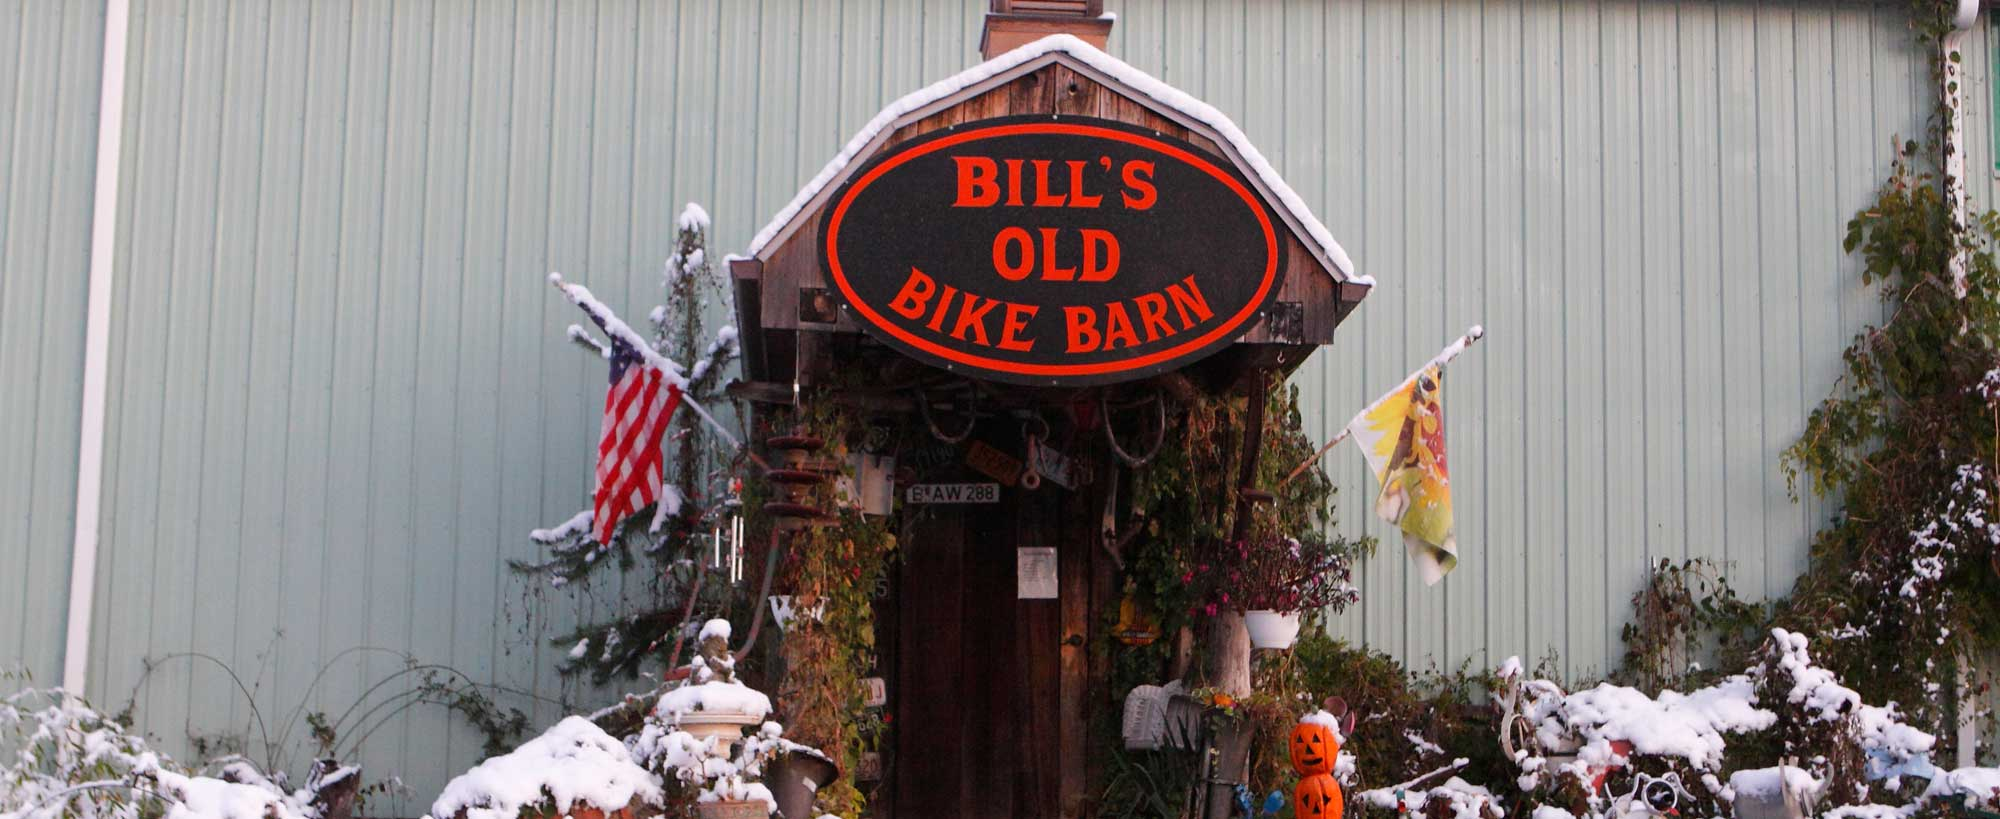 """Visit Bill's Old Bike Barn. An experience you'll never forget"